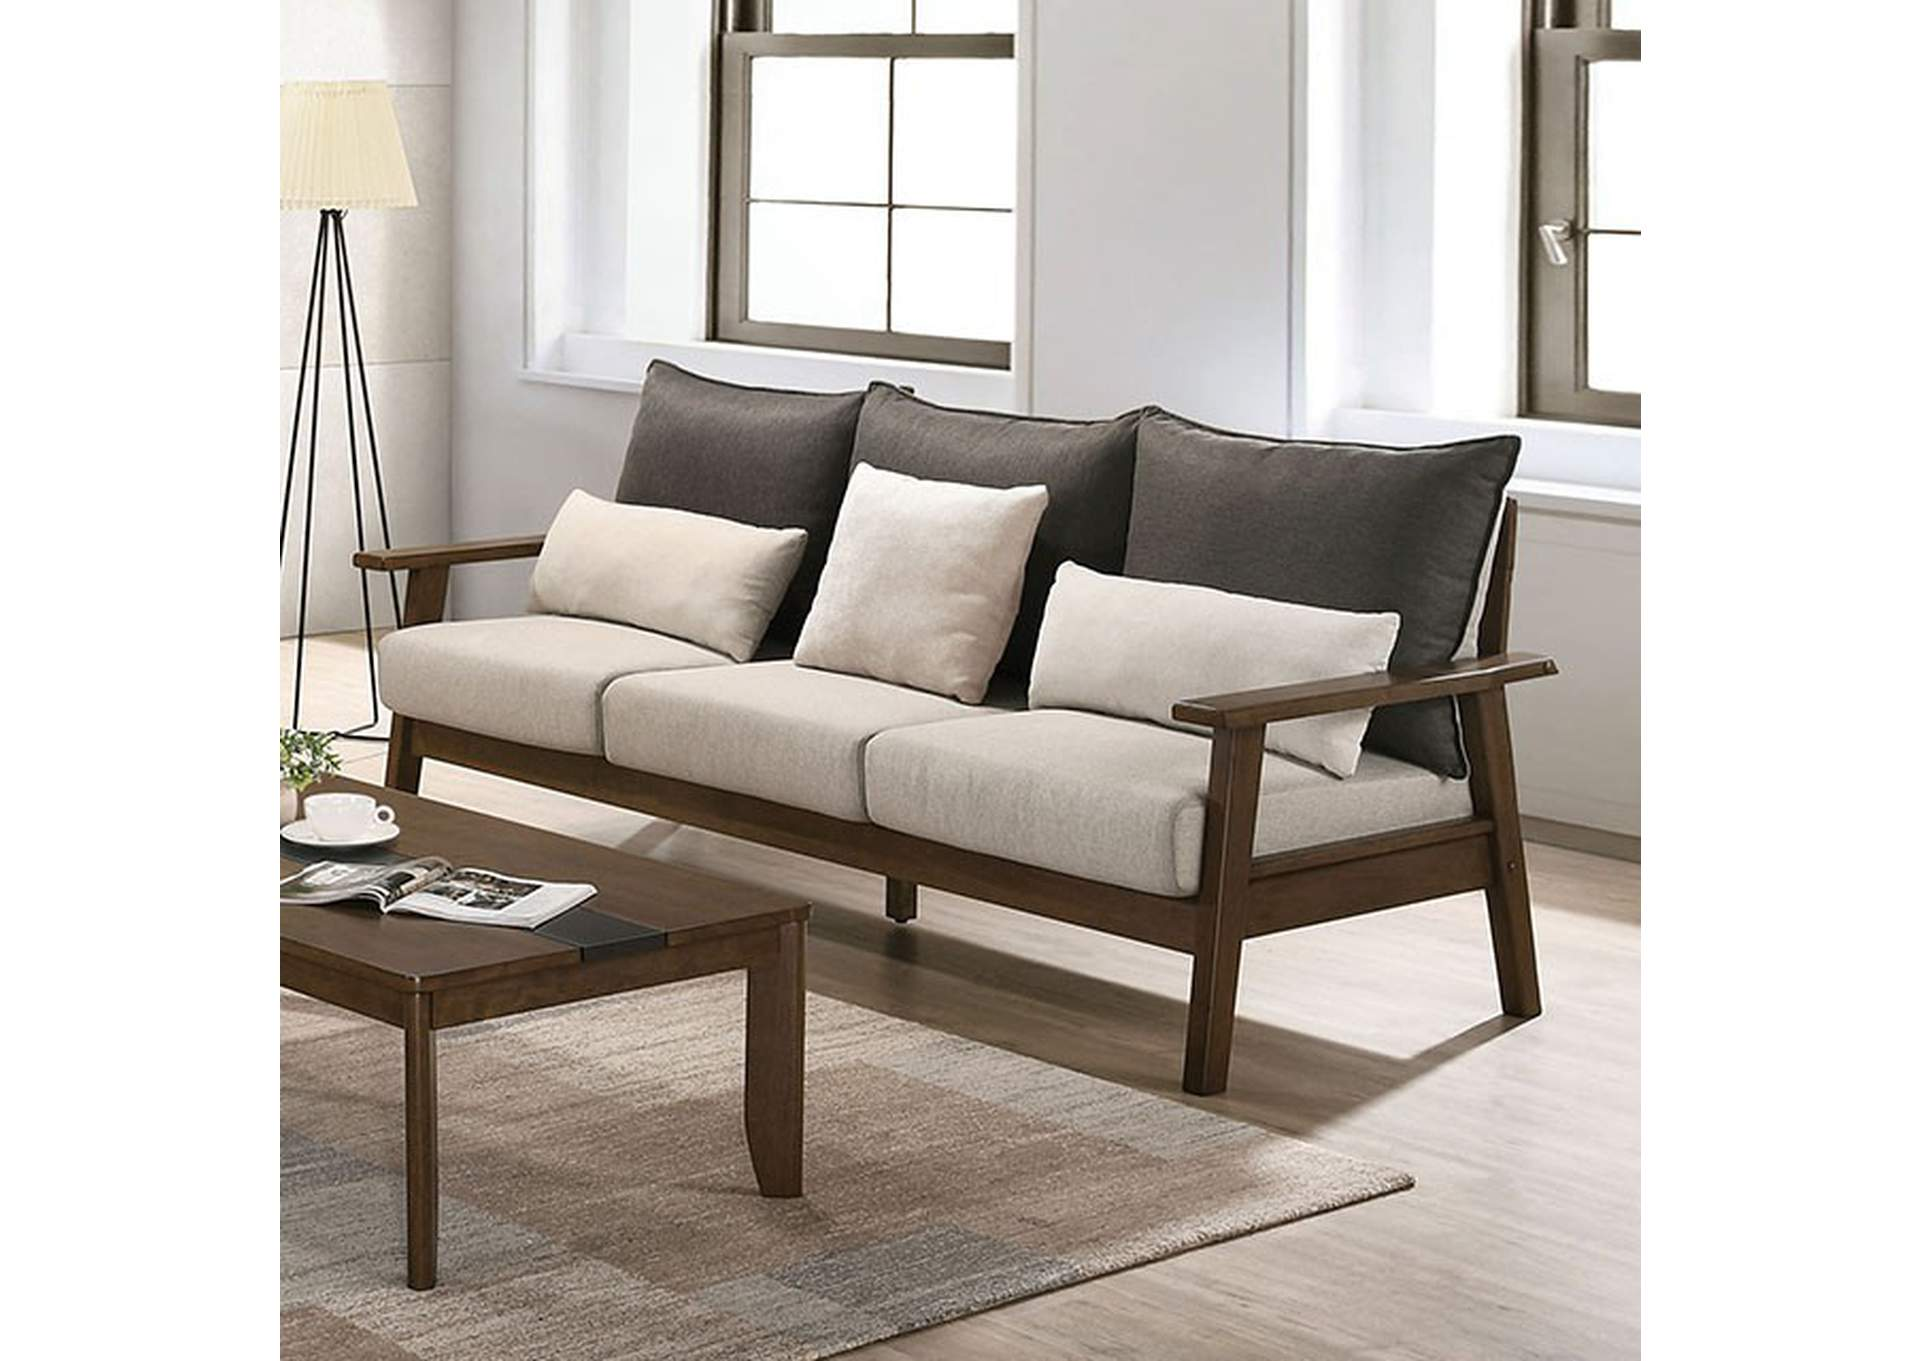 Louis Light Walnut Sofa,Furniture of America